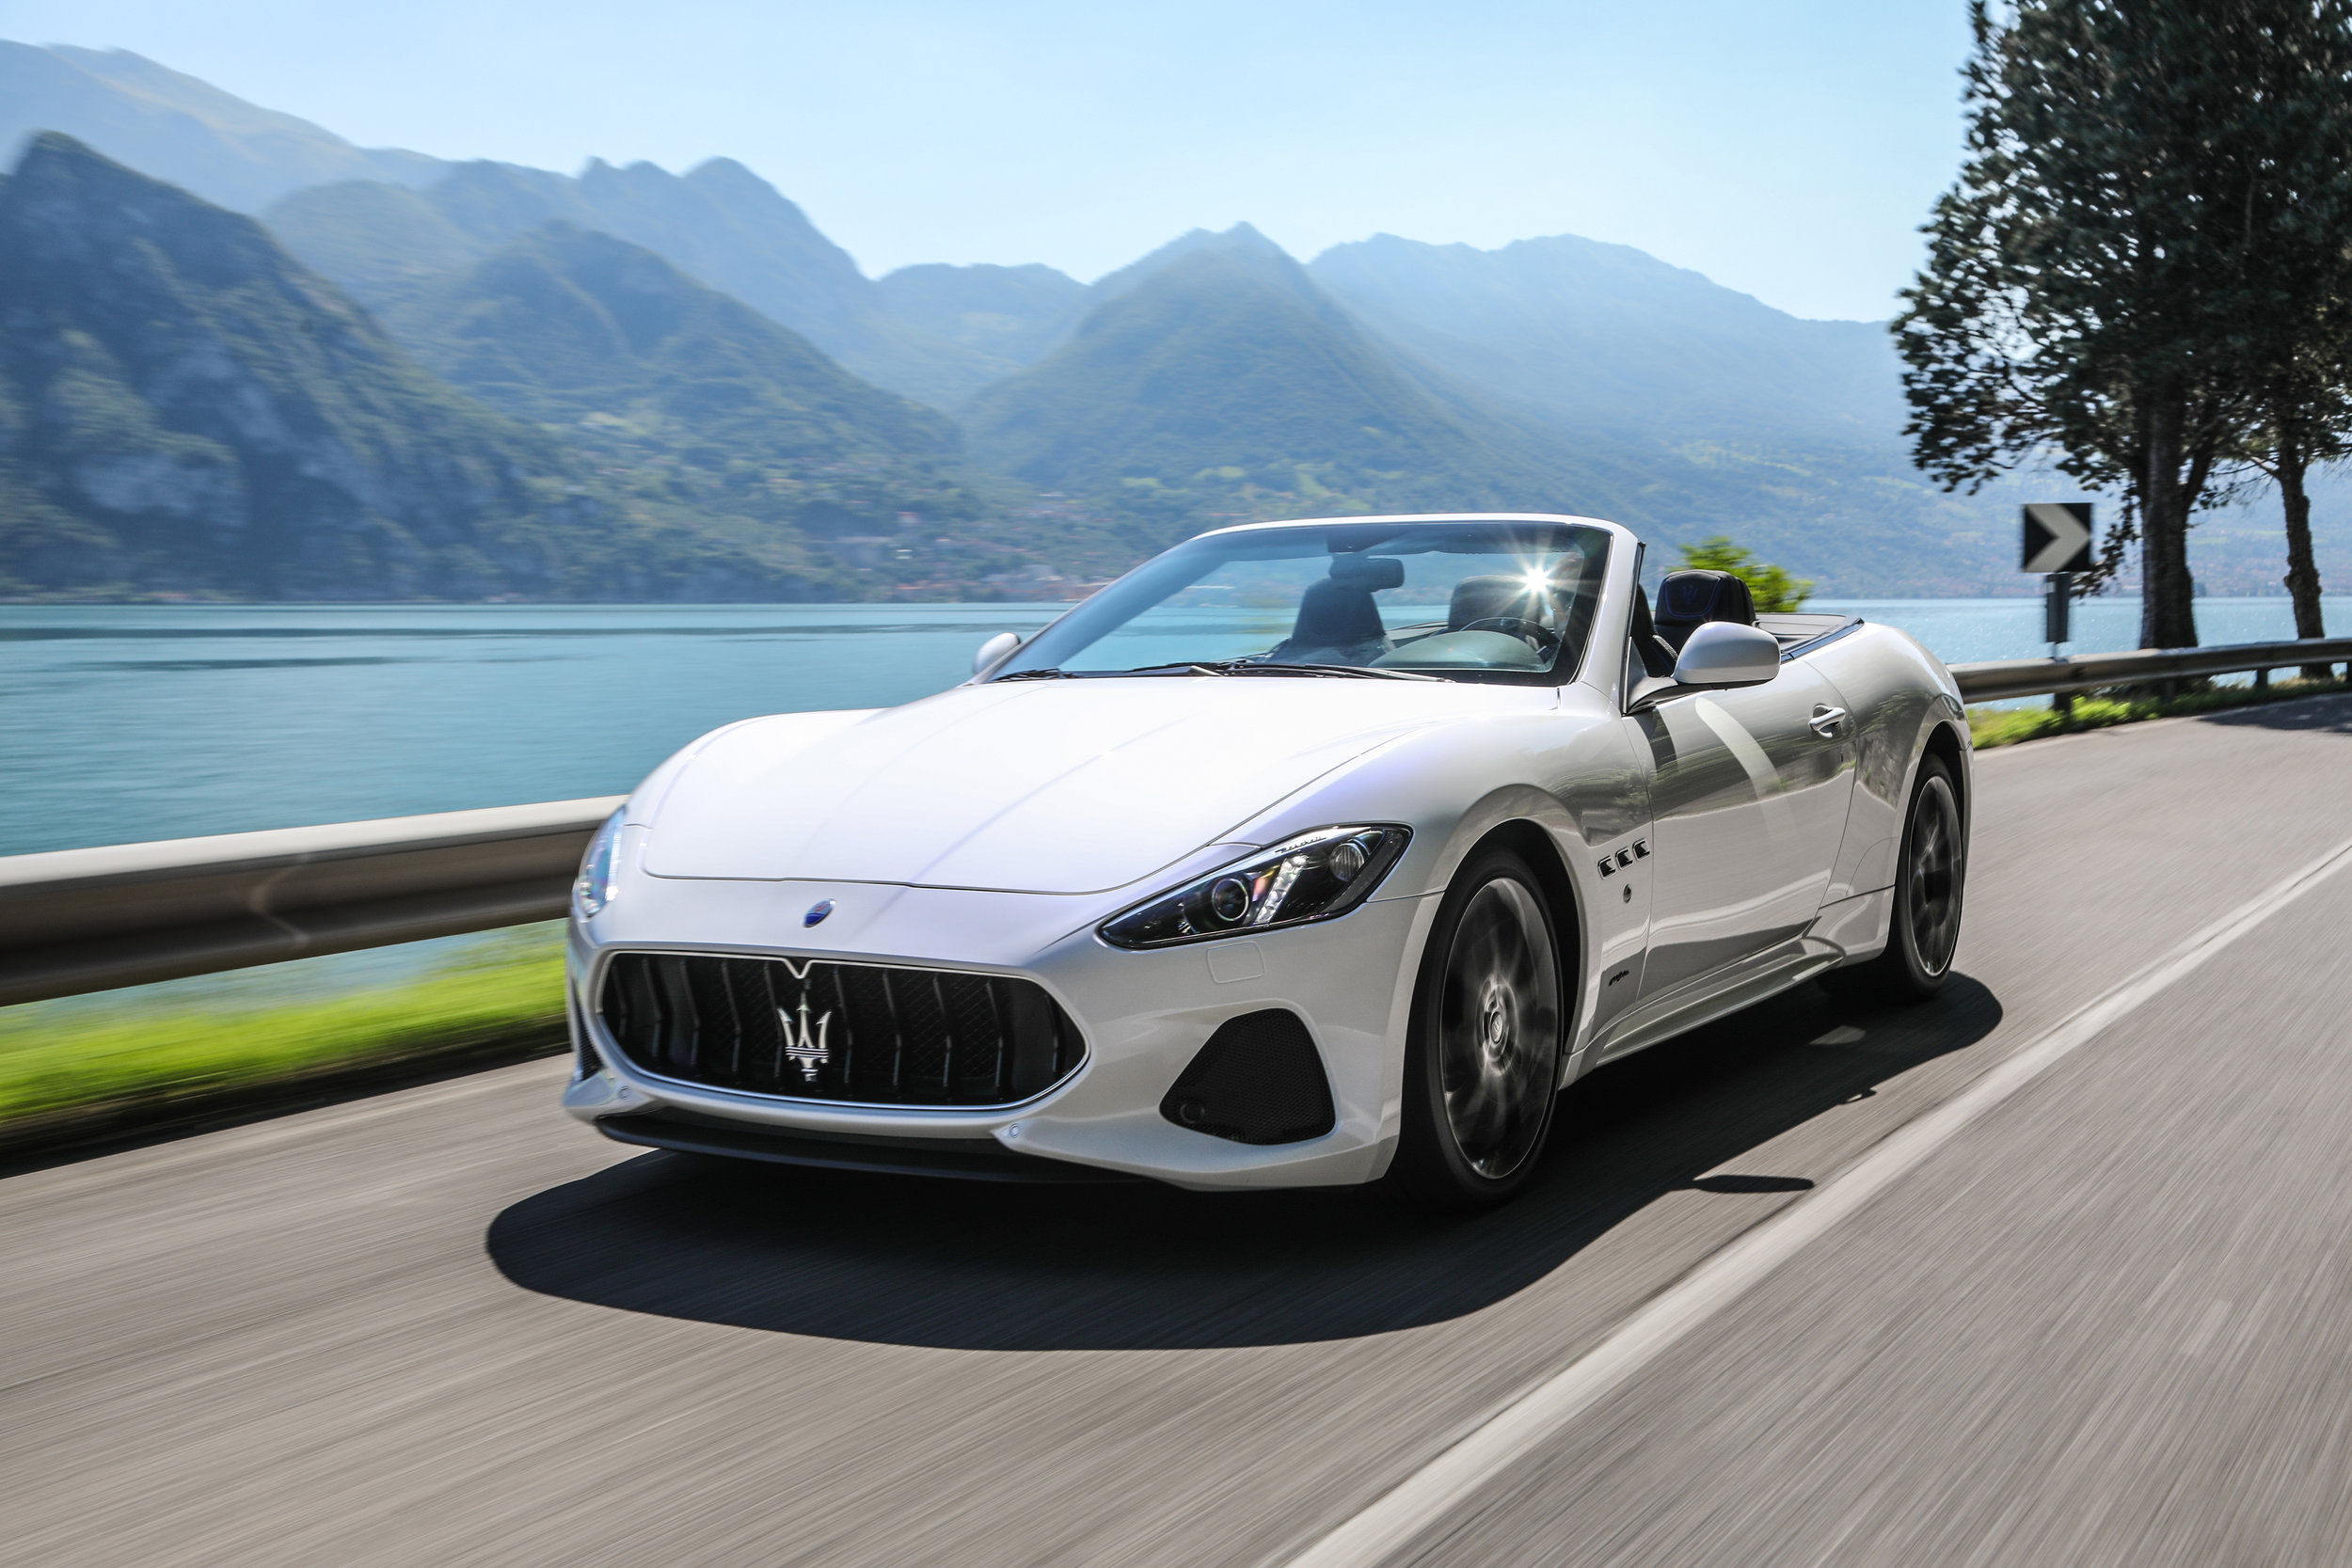 Maserati GranTurismo MC Convertible - Color | White